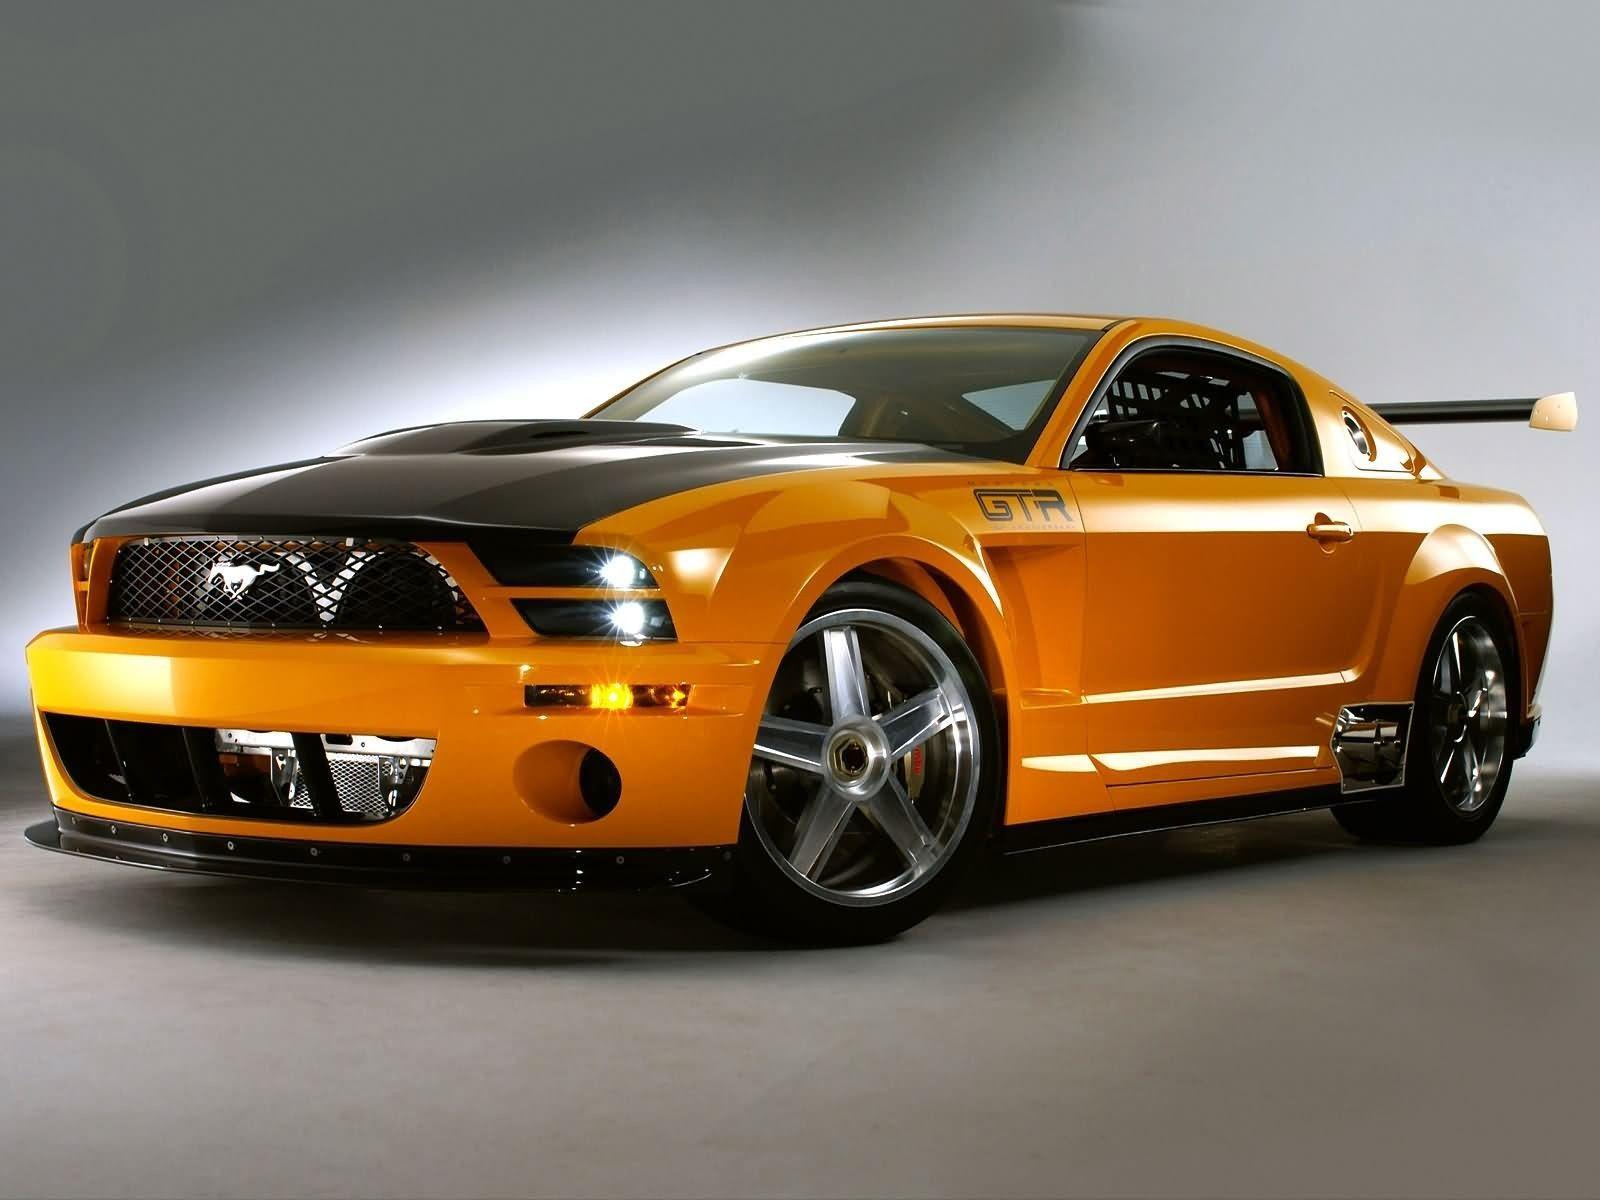 QQ Wallpapers: Ford Mustang Wallpapers and Images